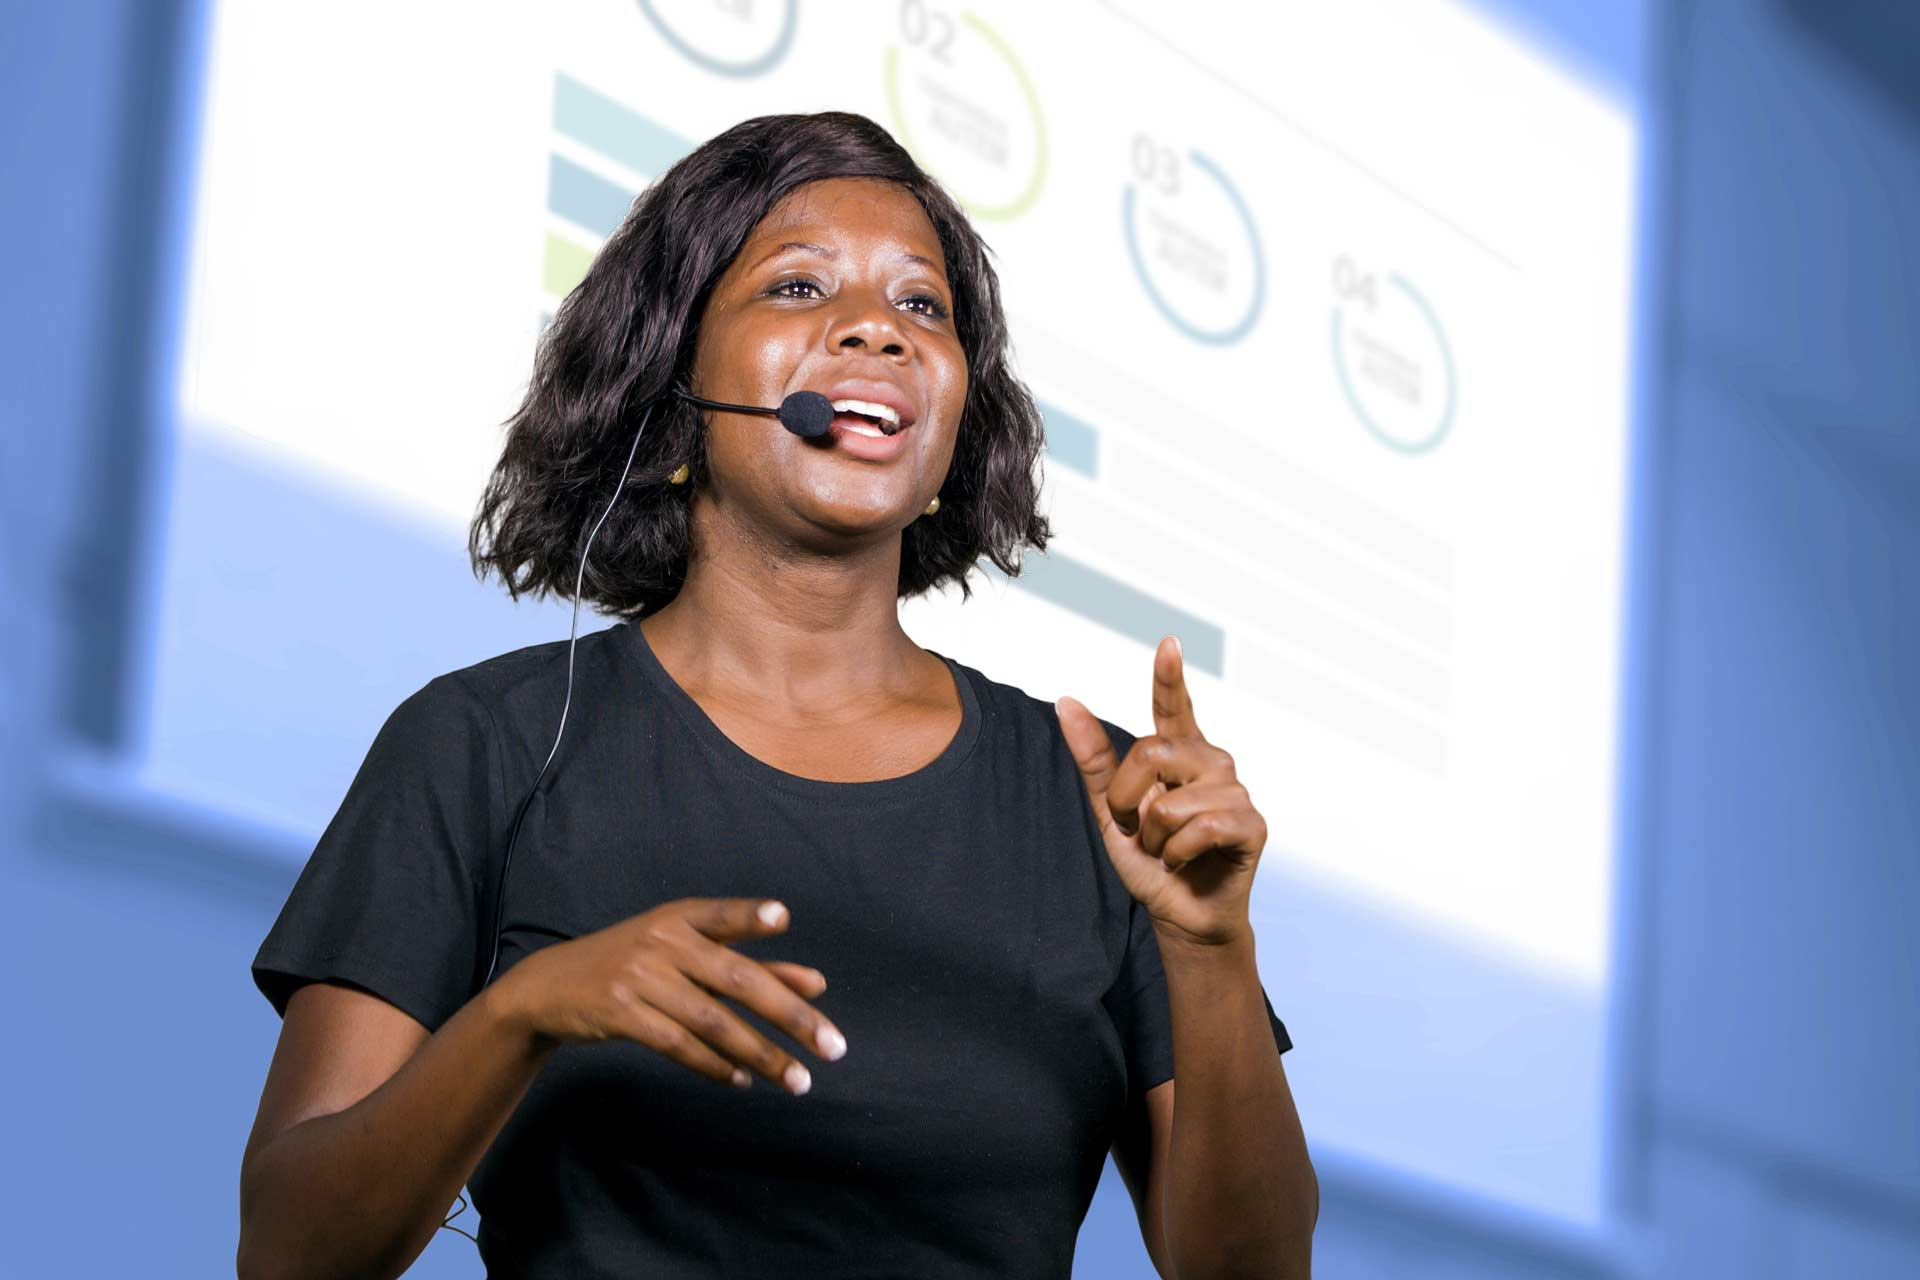 Woman presenting at conference with projector screen behind her